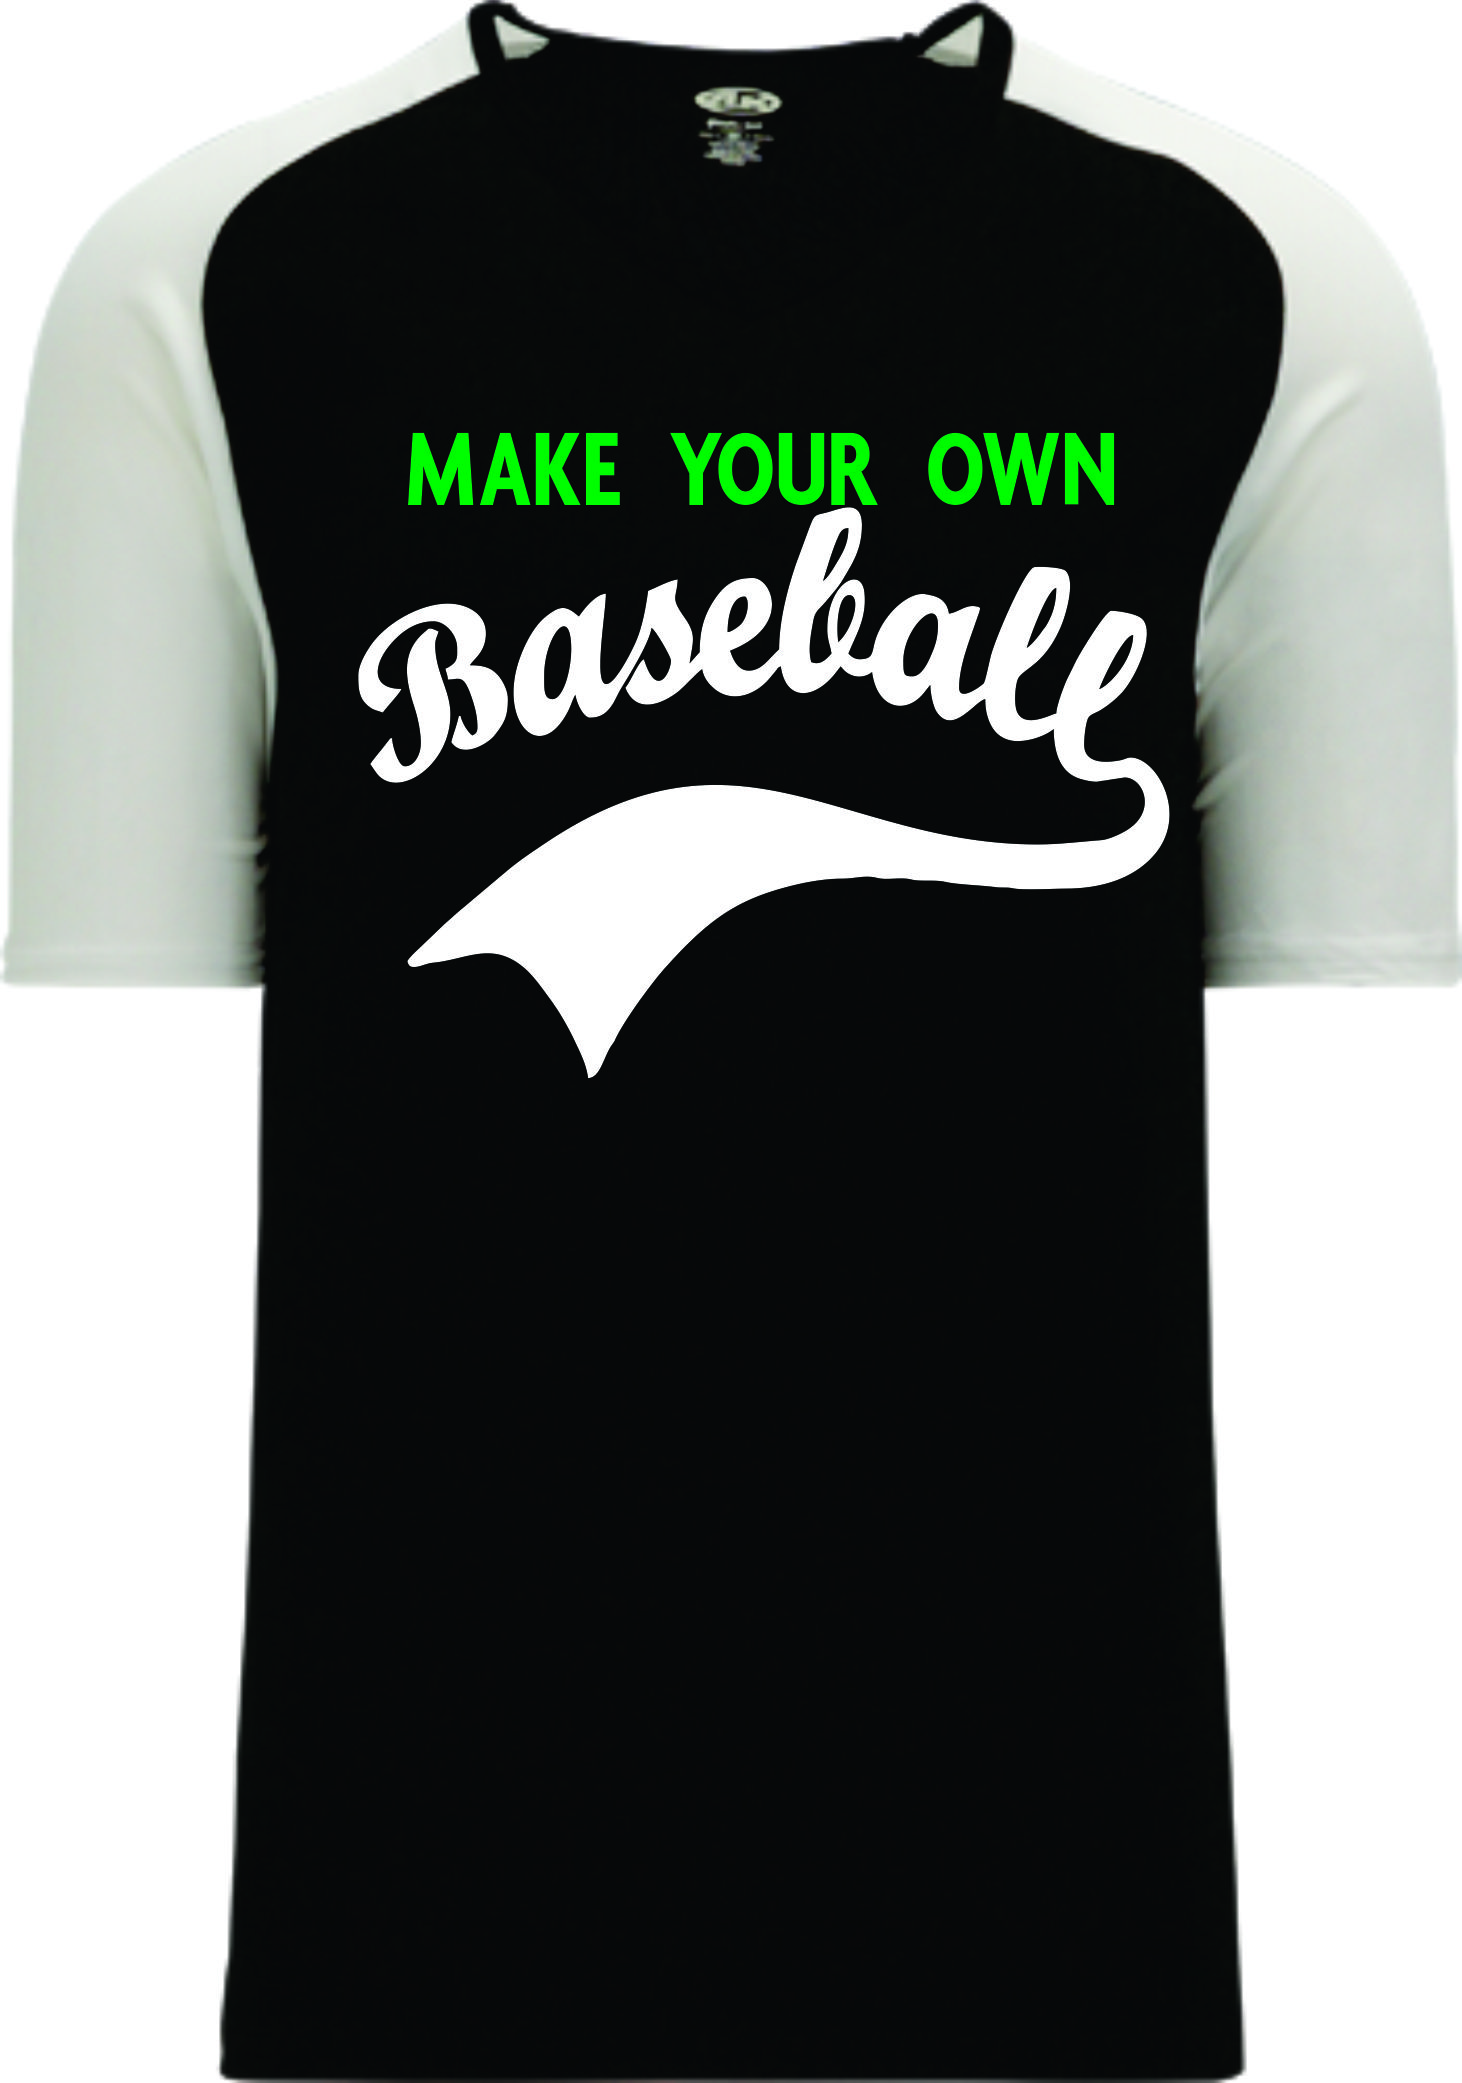 Custom Ontario Baseball & Softball Jerseys | Design Your Own | No Min